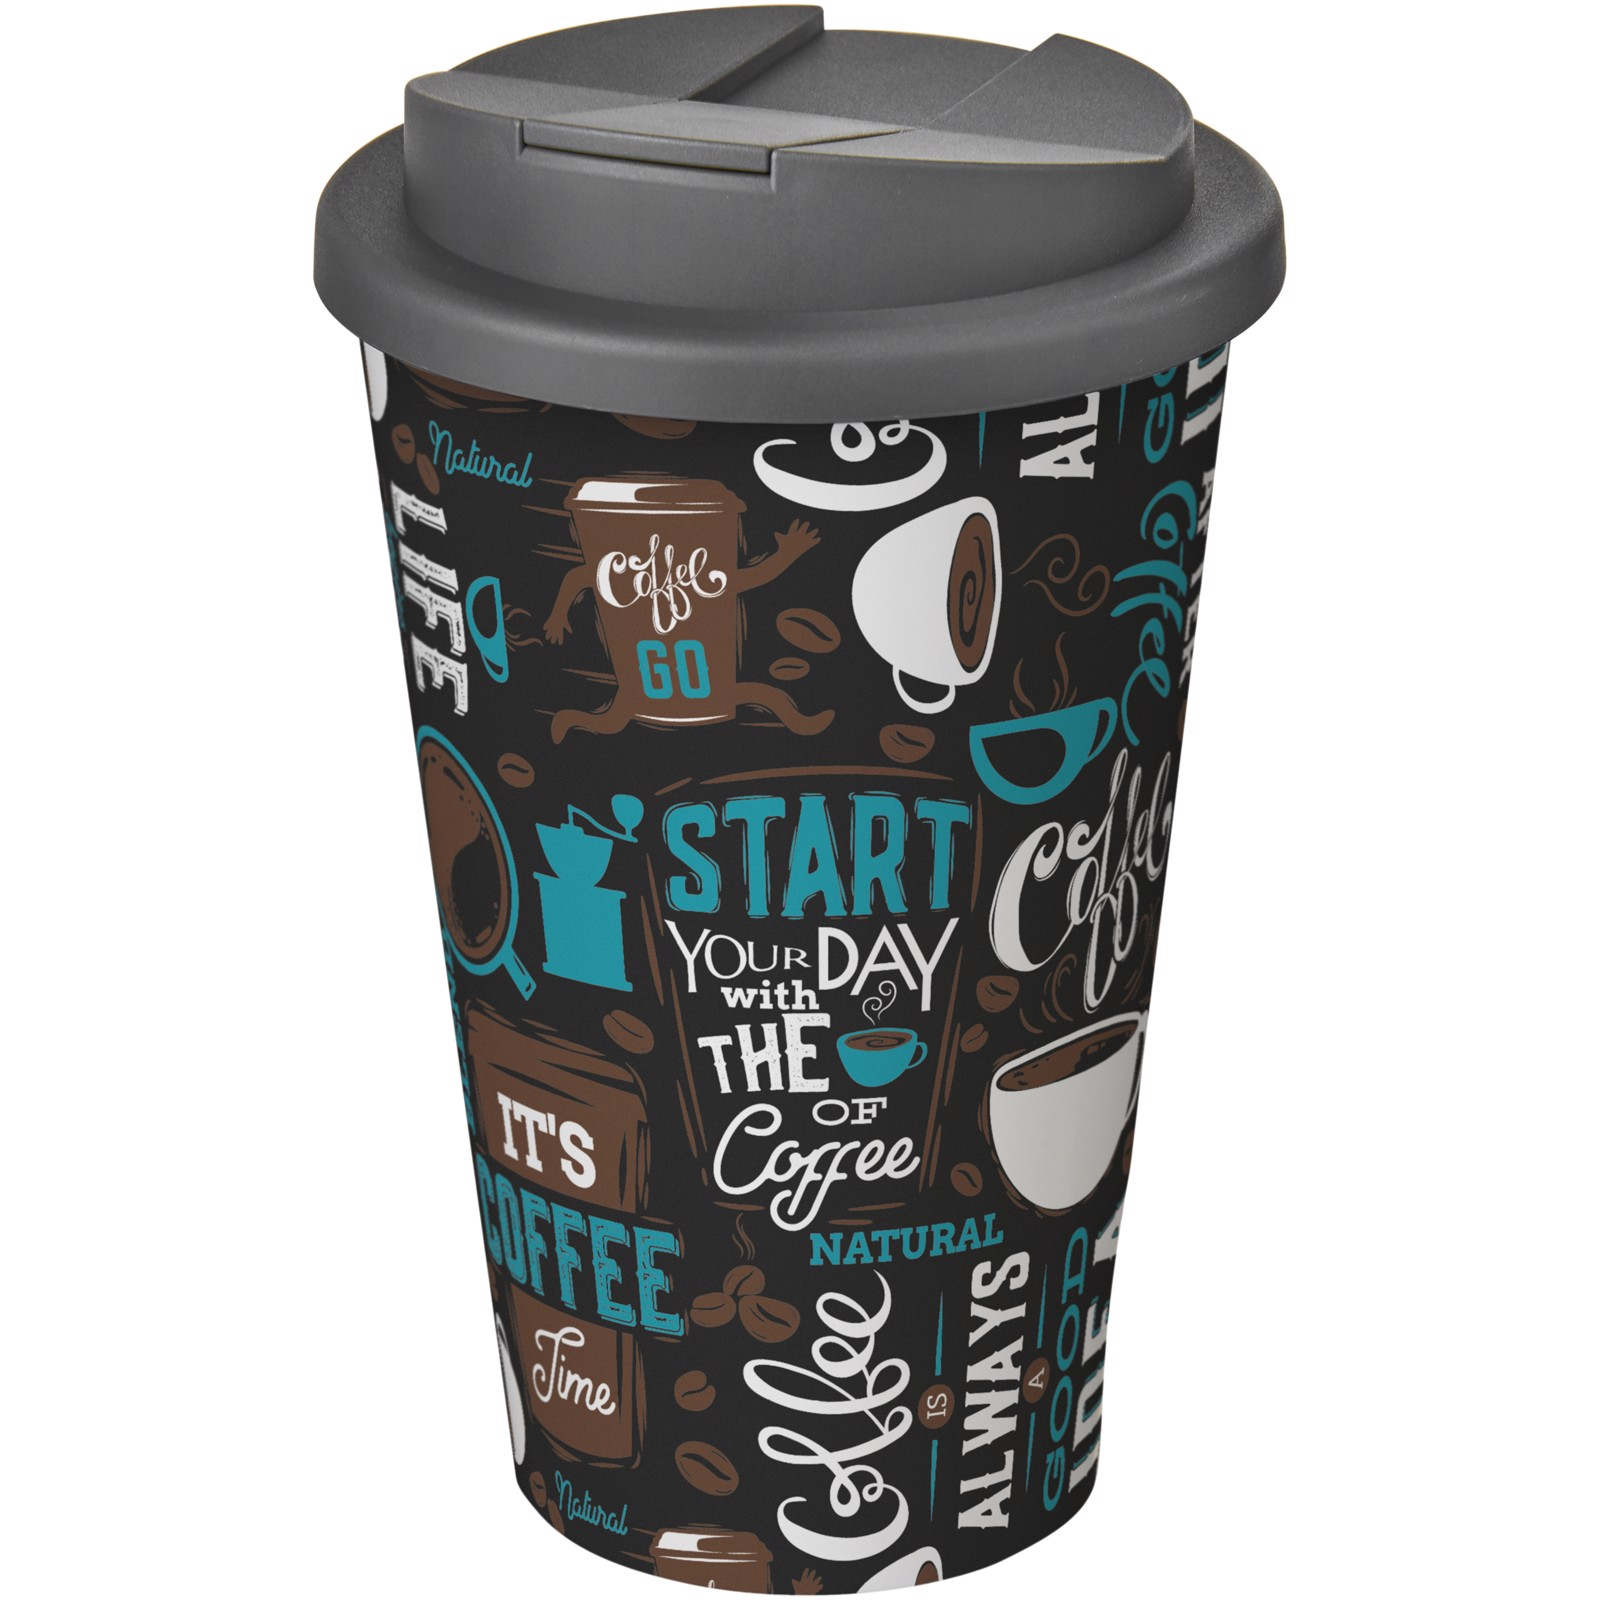 Brite-Americano® 350 ml tumbler with spill-proof lid - White / Grey